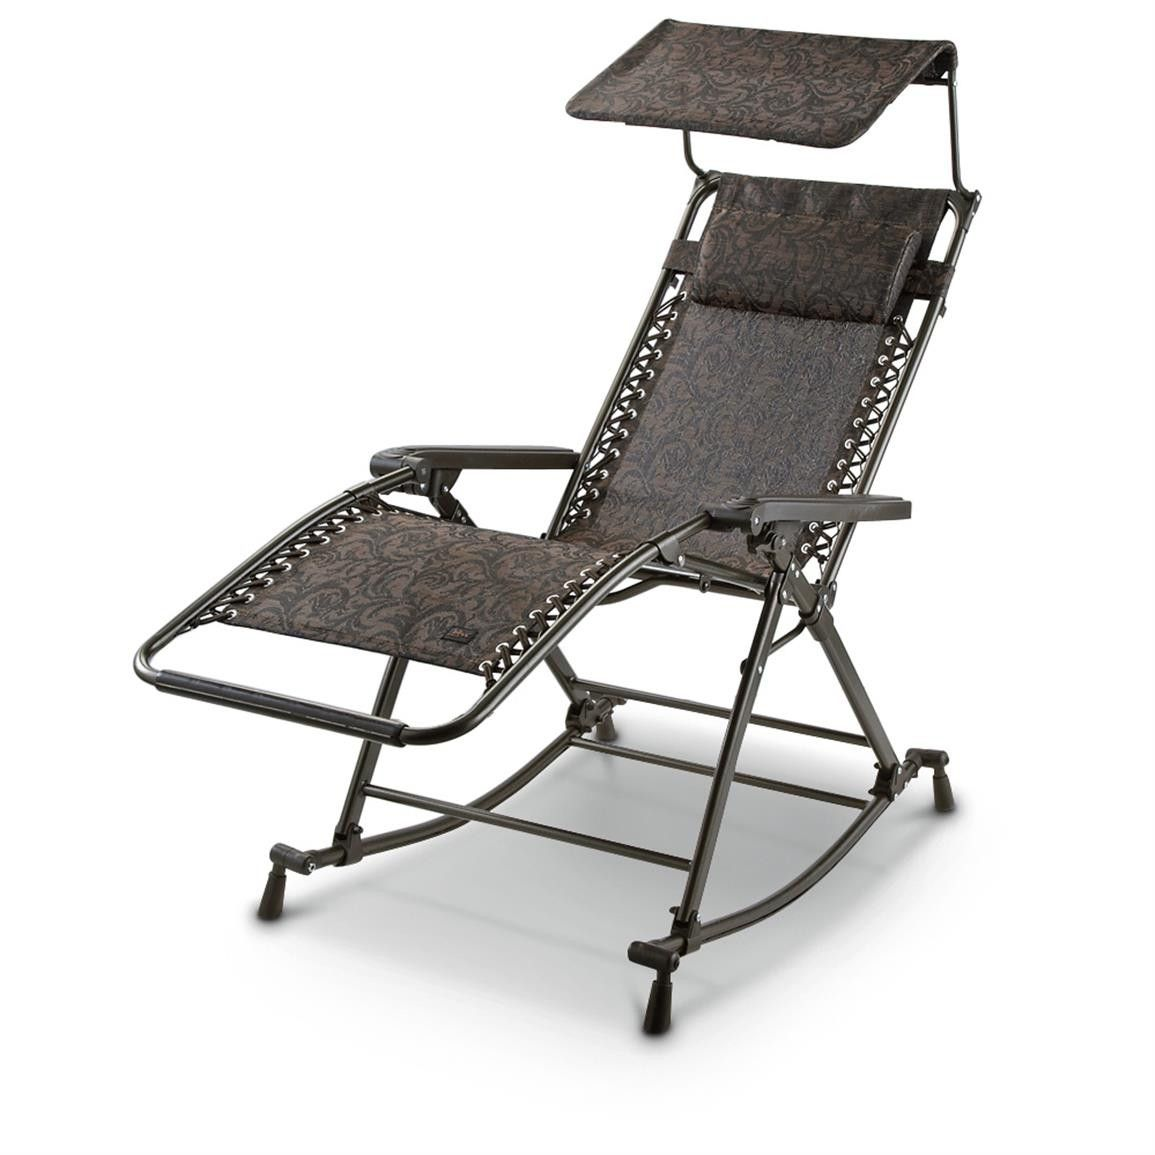 Merveilleux Anti Gravity Chair With Canopy   Home Office Furniture Set Check More At  Http:/